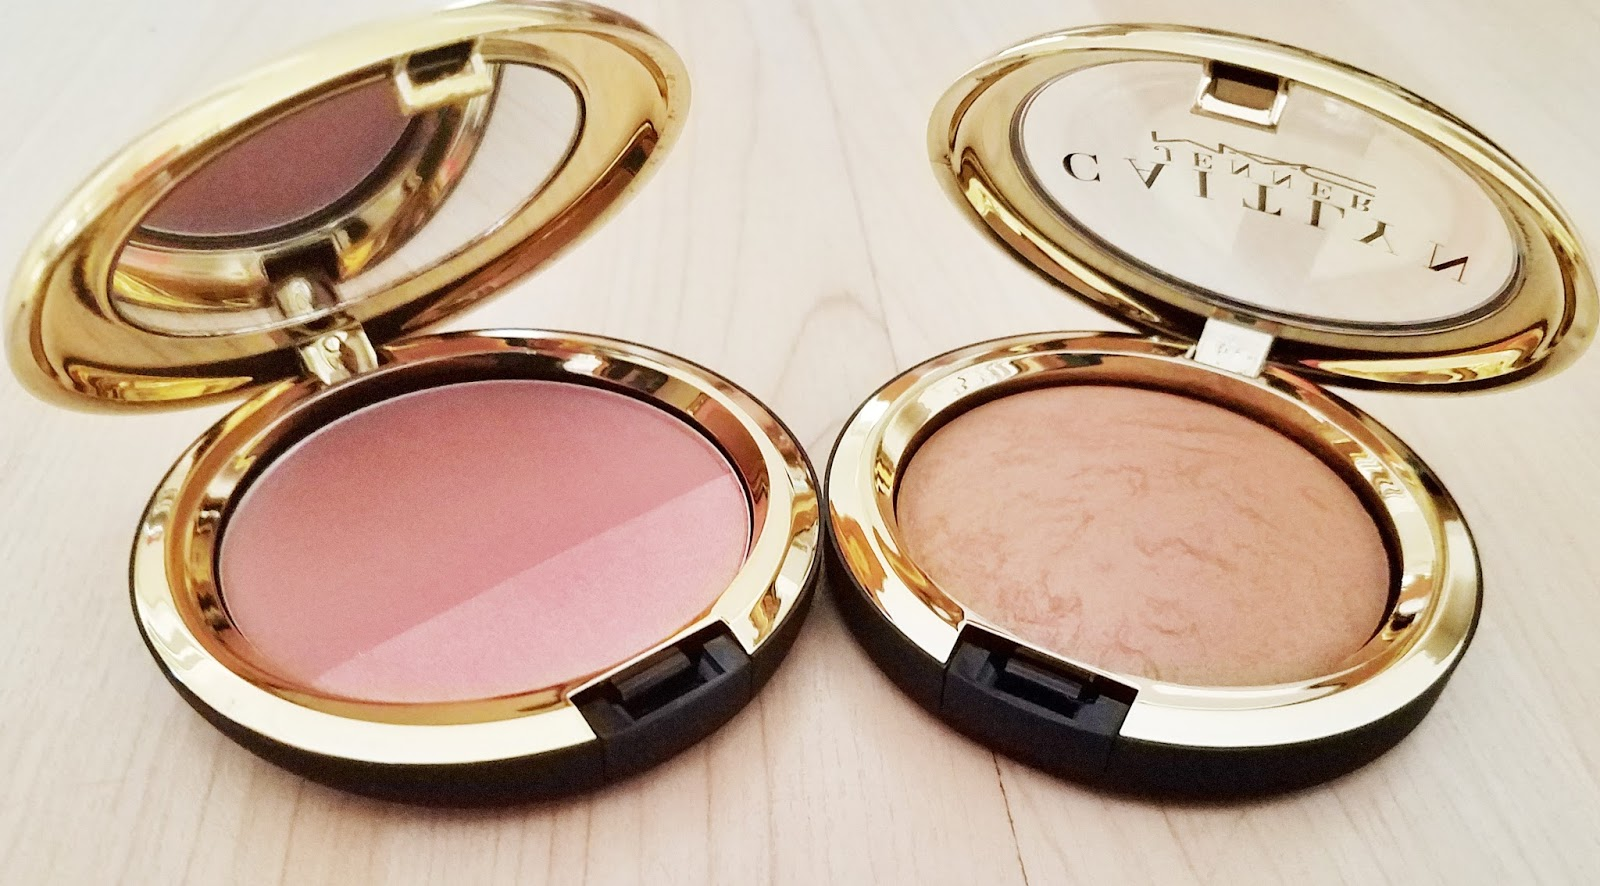 Mommy Diaries (Of a Florida Mom): MAC Cosmetics Caitlyn Jenner